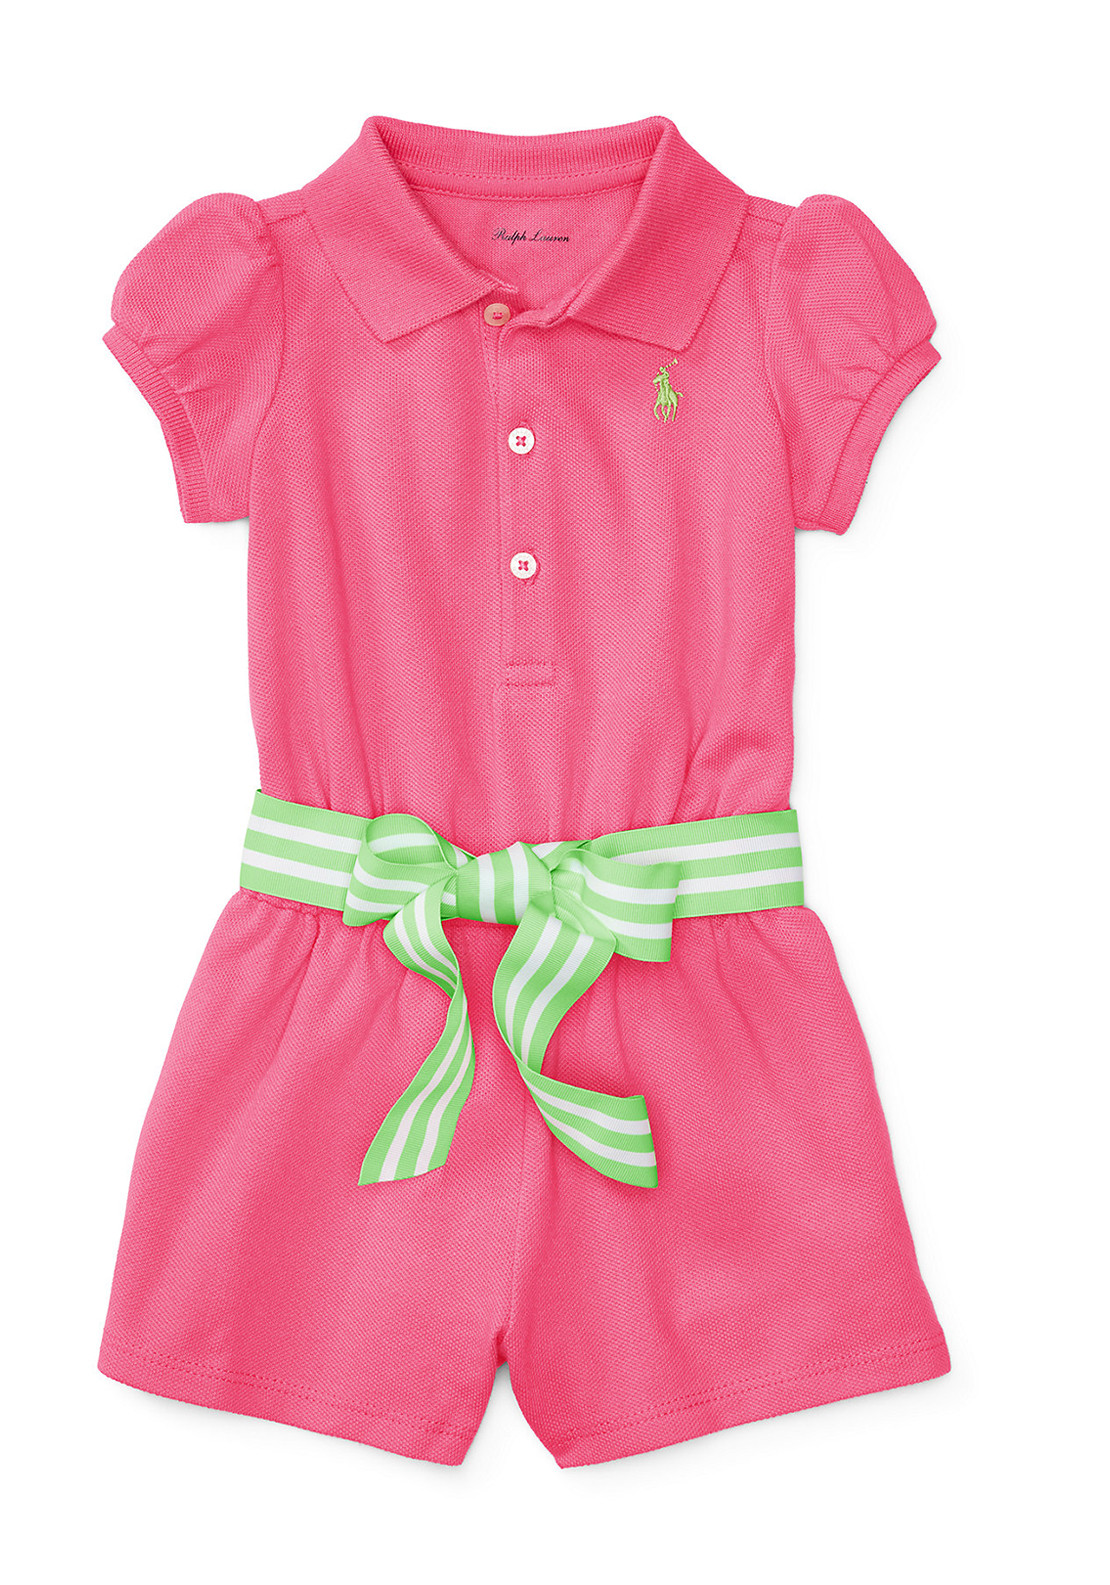 f6d2735be9 Ralph Lauren Baby Girls Romper Playsuit, Pink